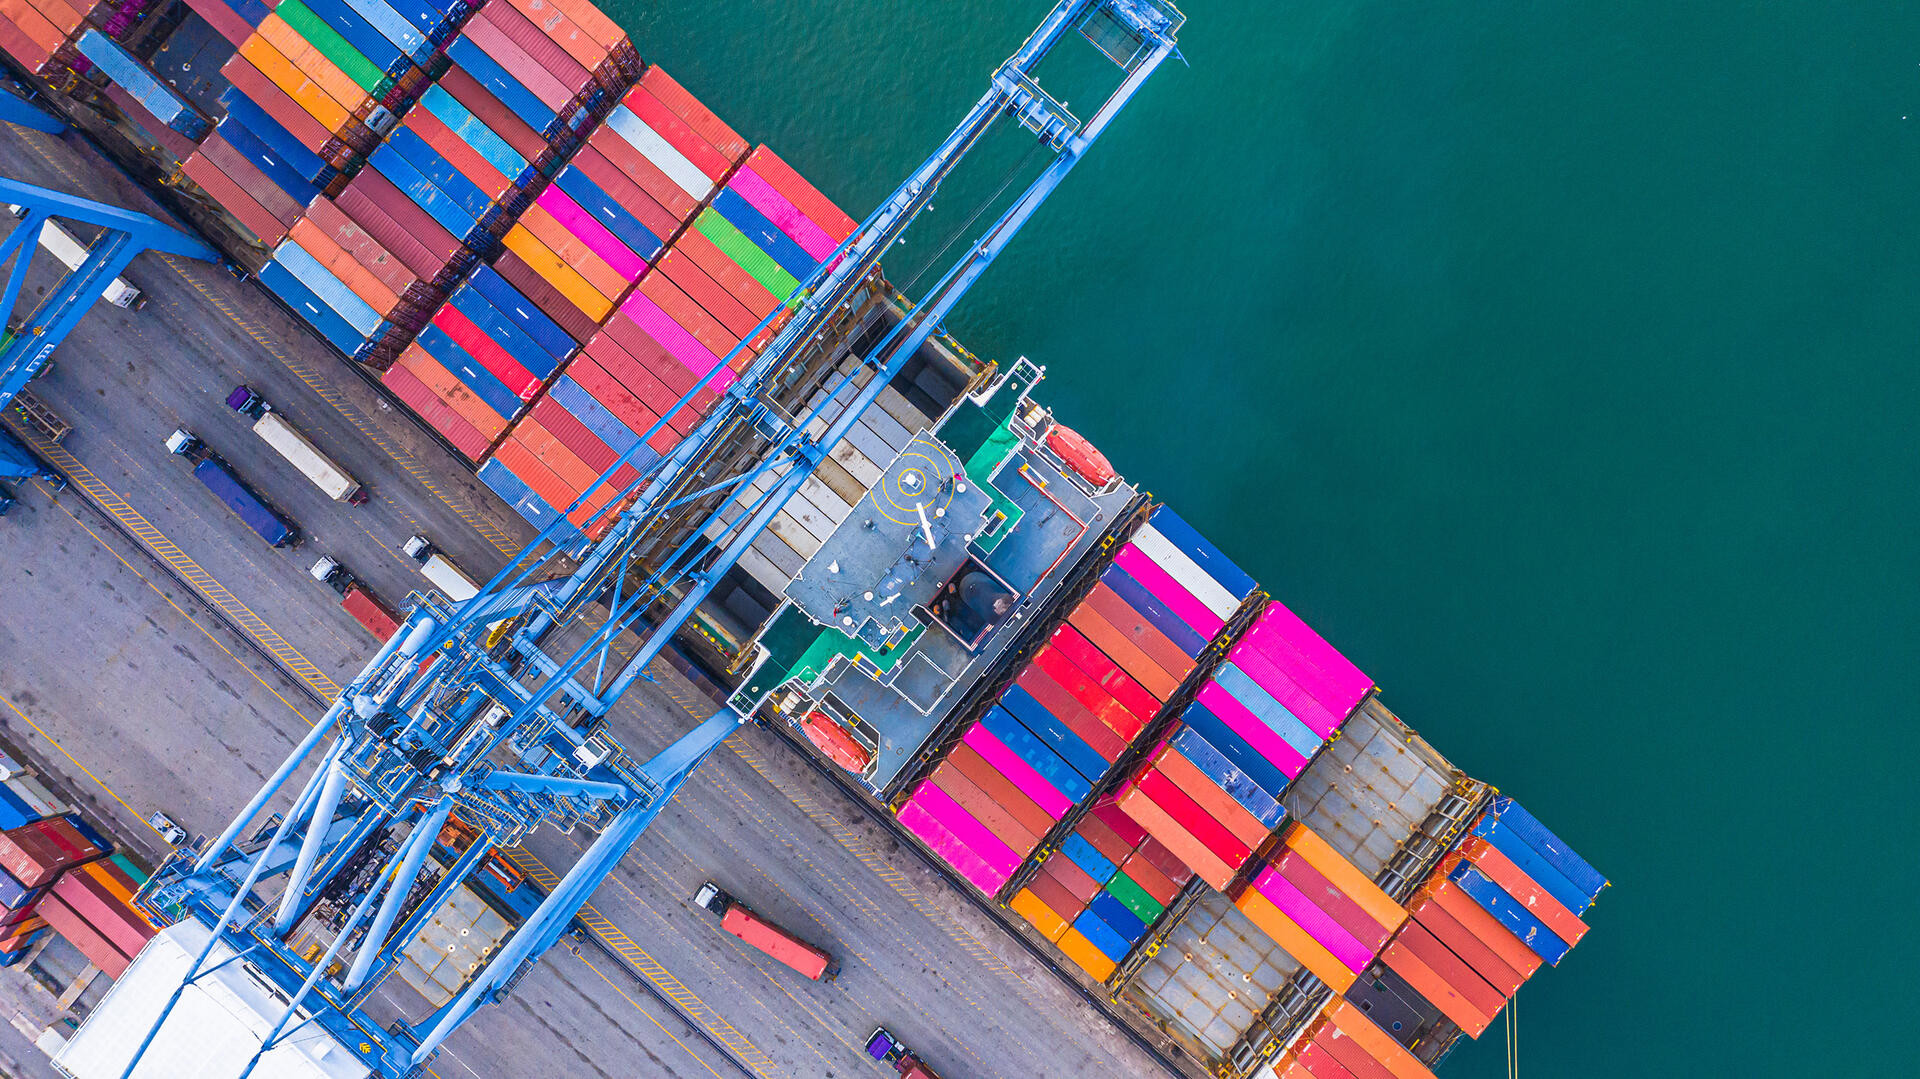 Container ship loading and unloading in deep sea port, Aerial top view of logistic import export transportation business by container ship in open sea